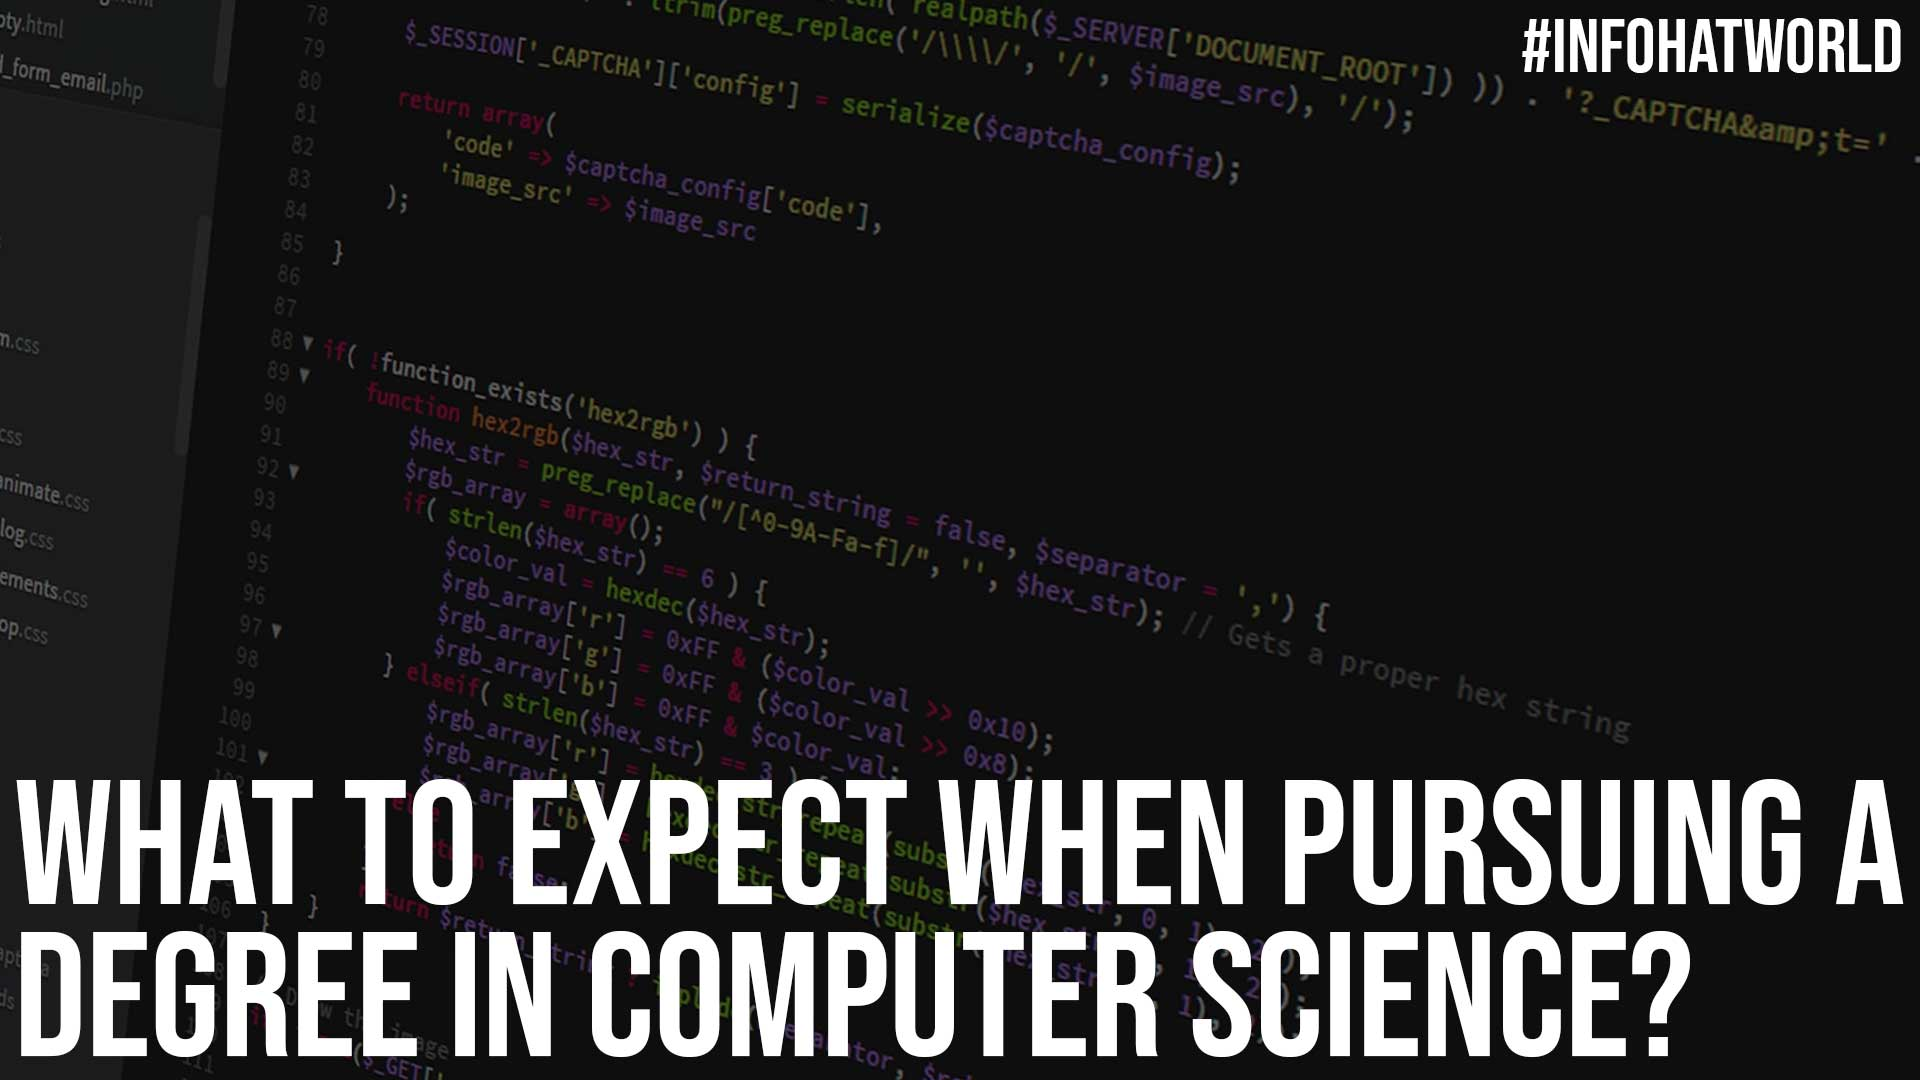 What to Expect When Pursuing a Degree in Computer Science